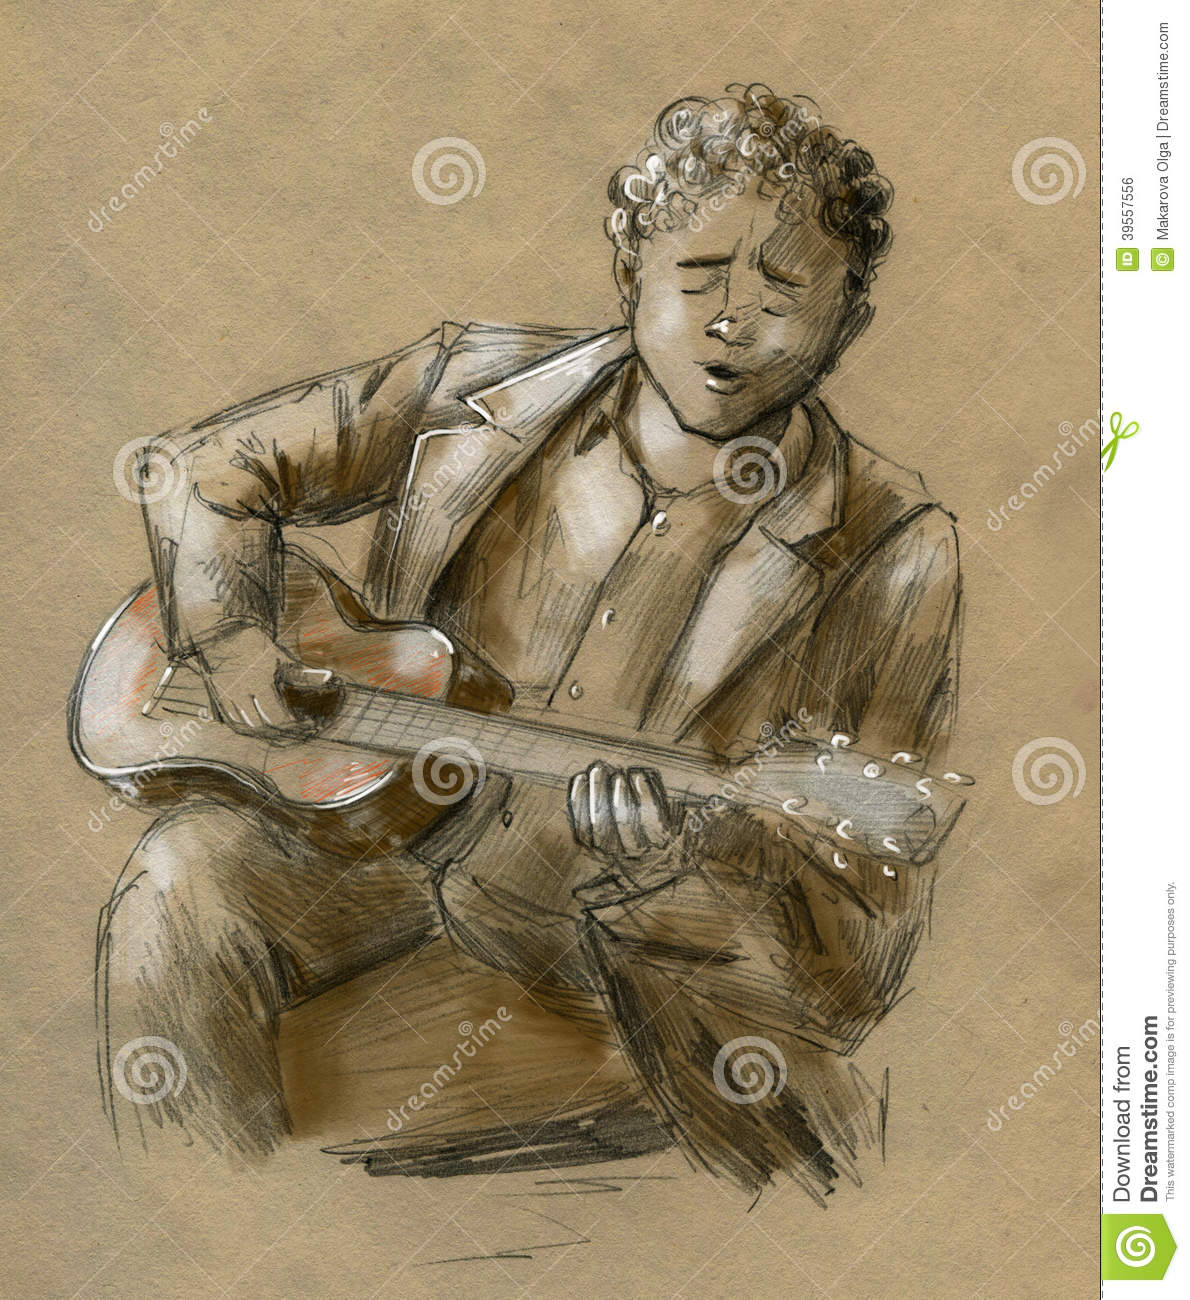 Young man with stylish vintage jacket and curly hair playing the guitar and singing some sad song hand drawn pencil sketch